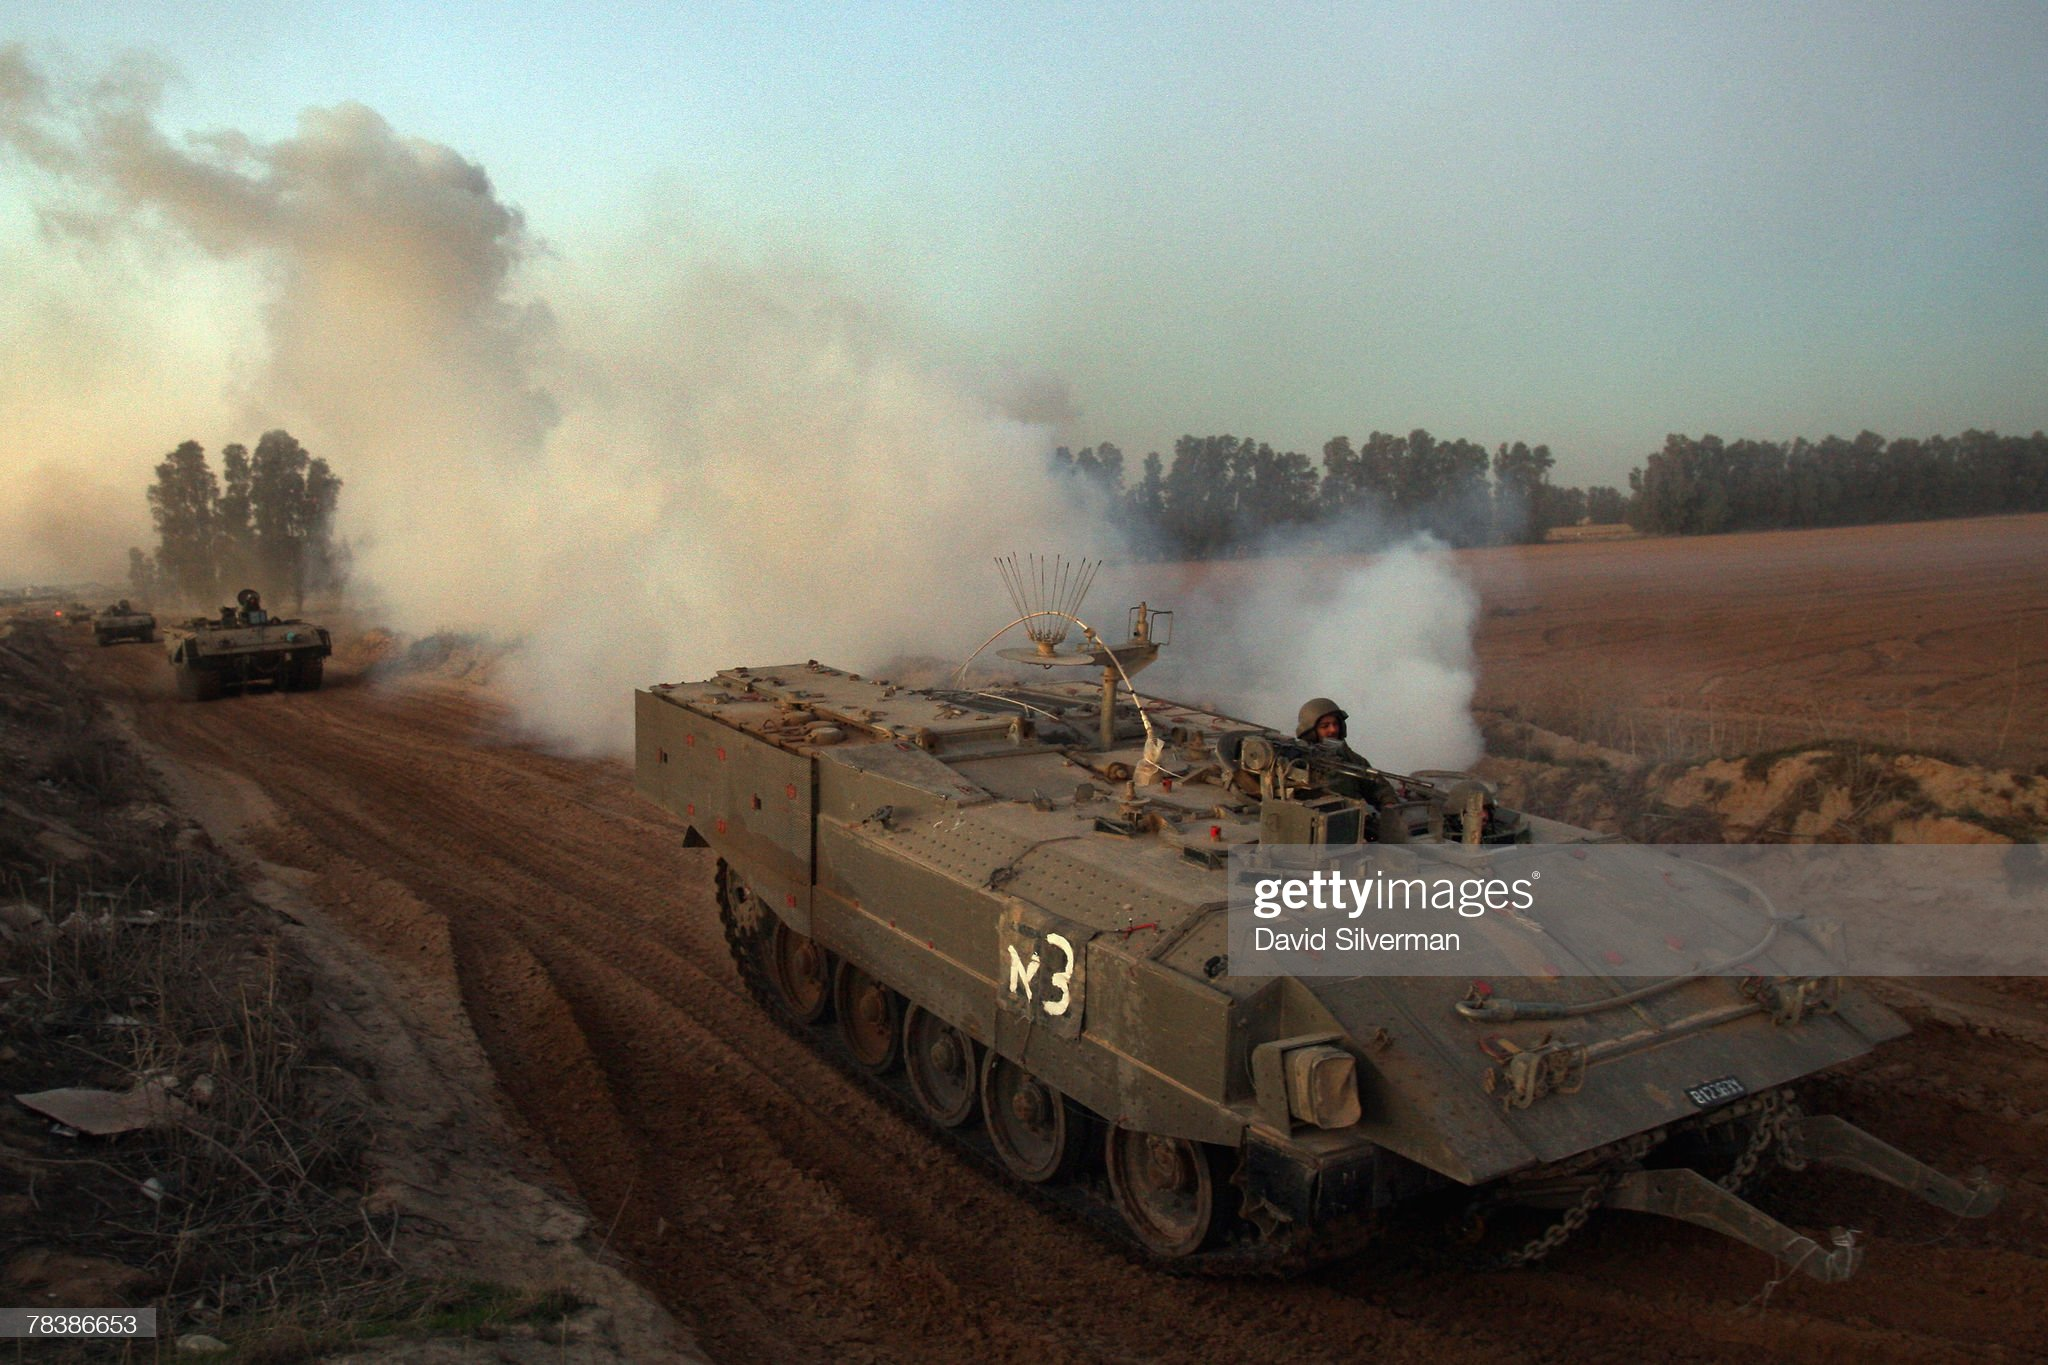 convoy-of-israeli-armoured-vehicles-churns-up-dust-and-smoke-as-it-picture-id78386653?s=2048x2048